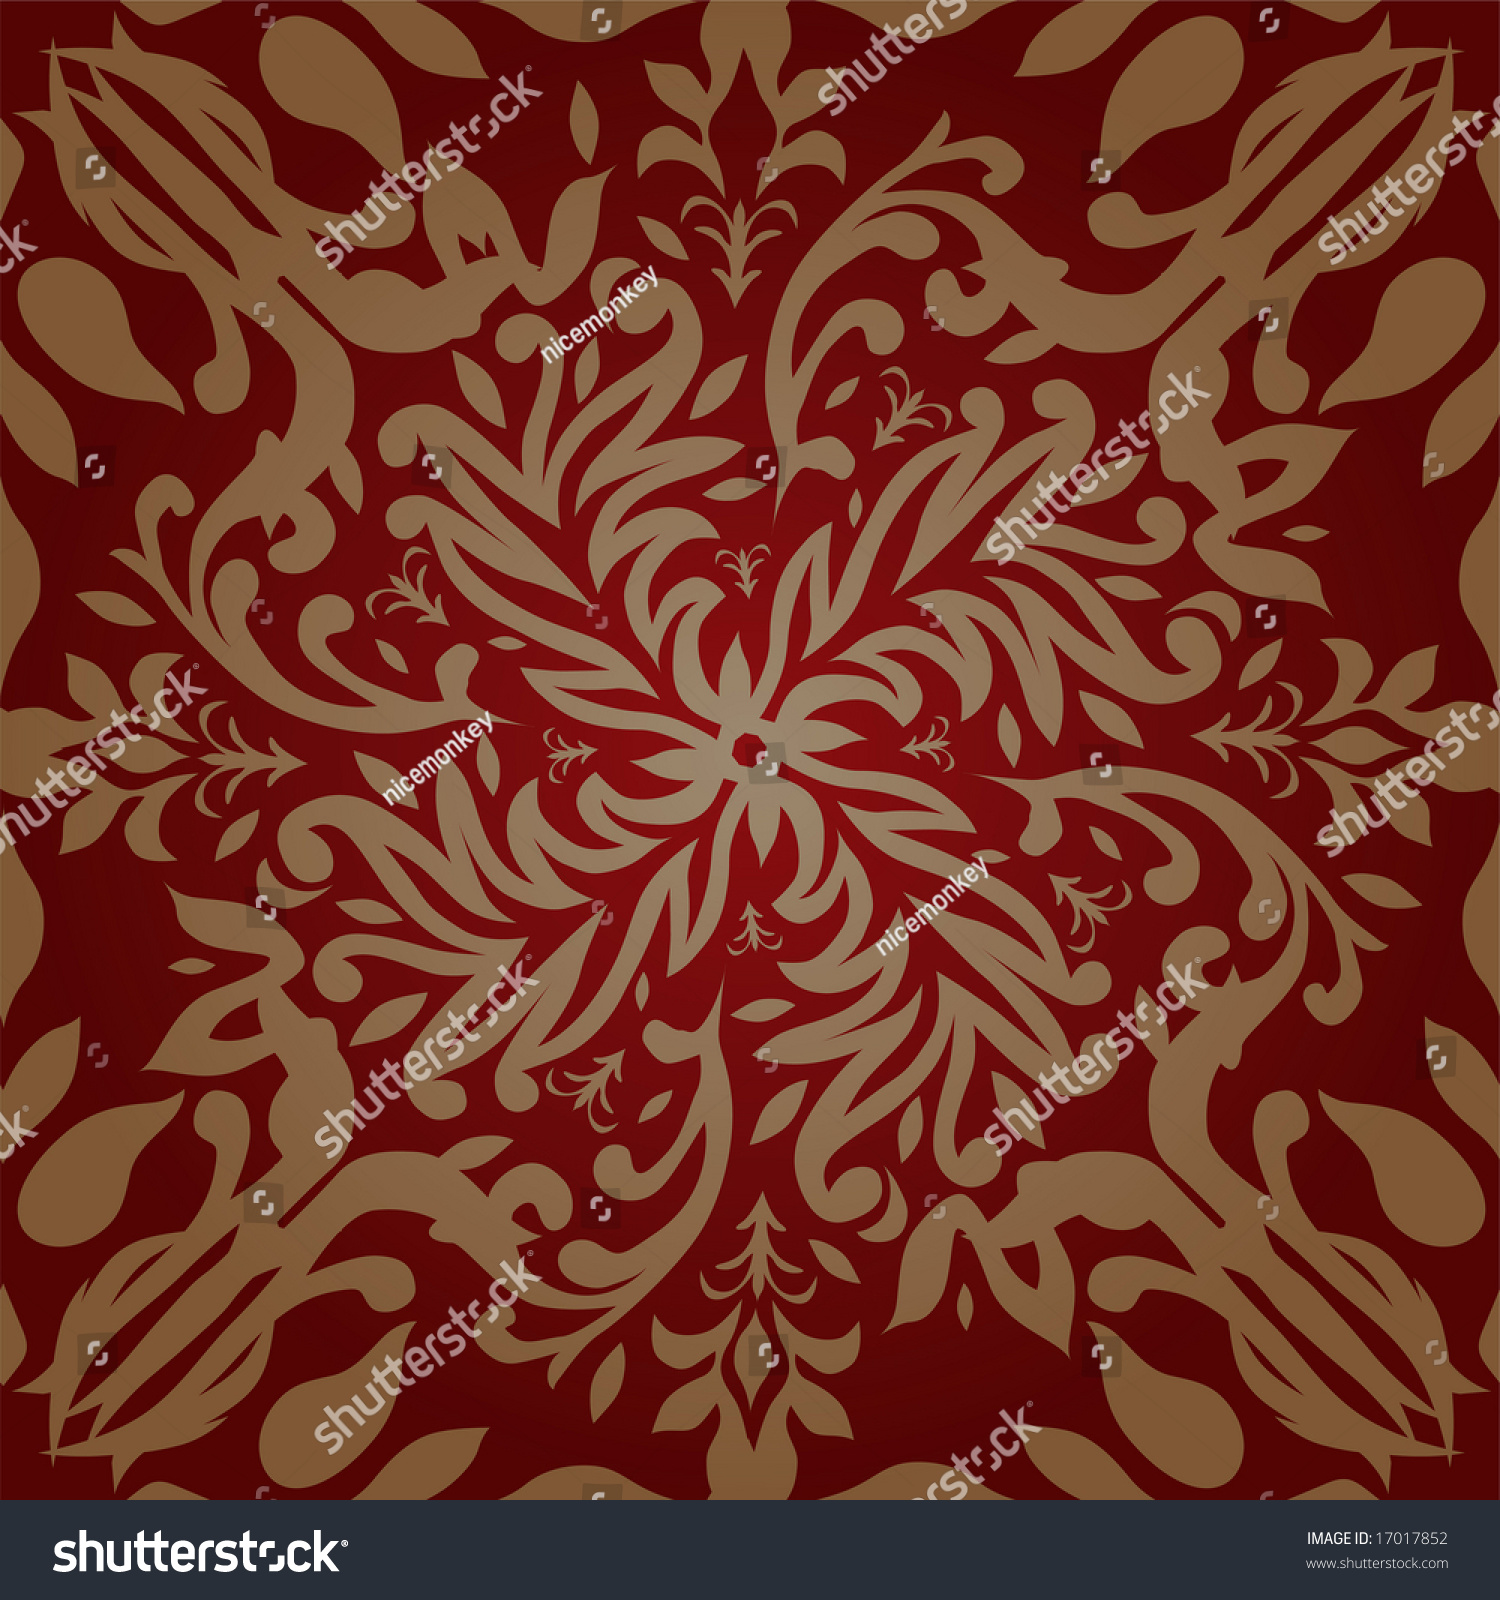 Maroon And Gold Retro Wallpaper Design That Seamlessly Repeats